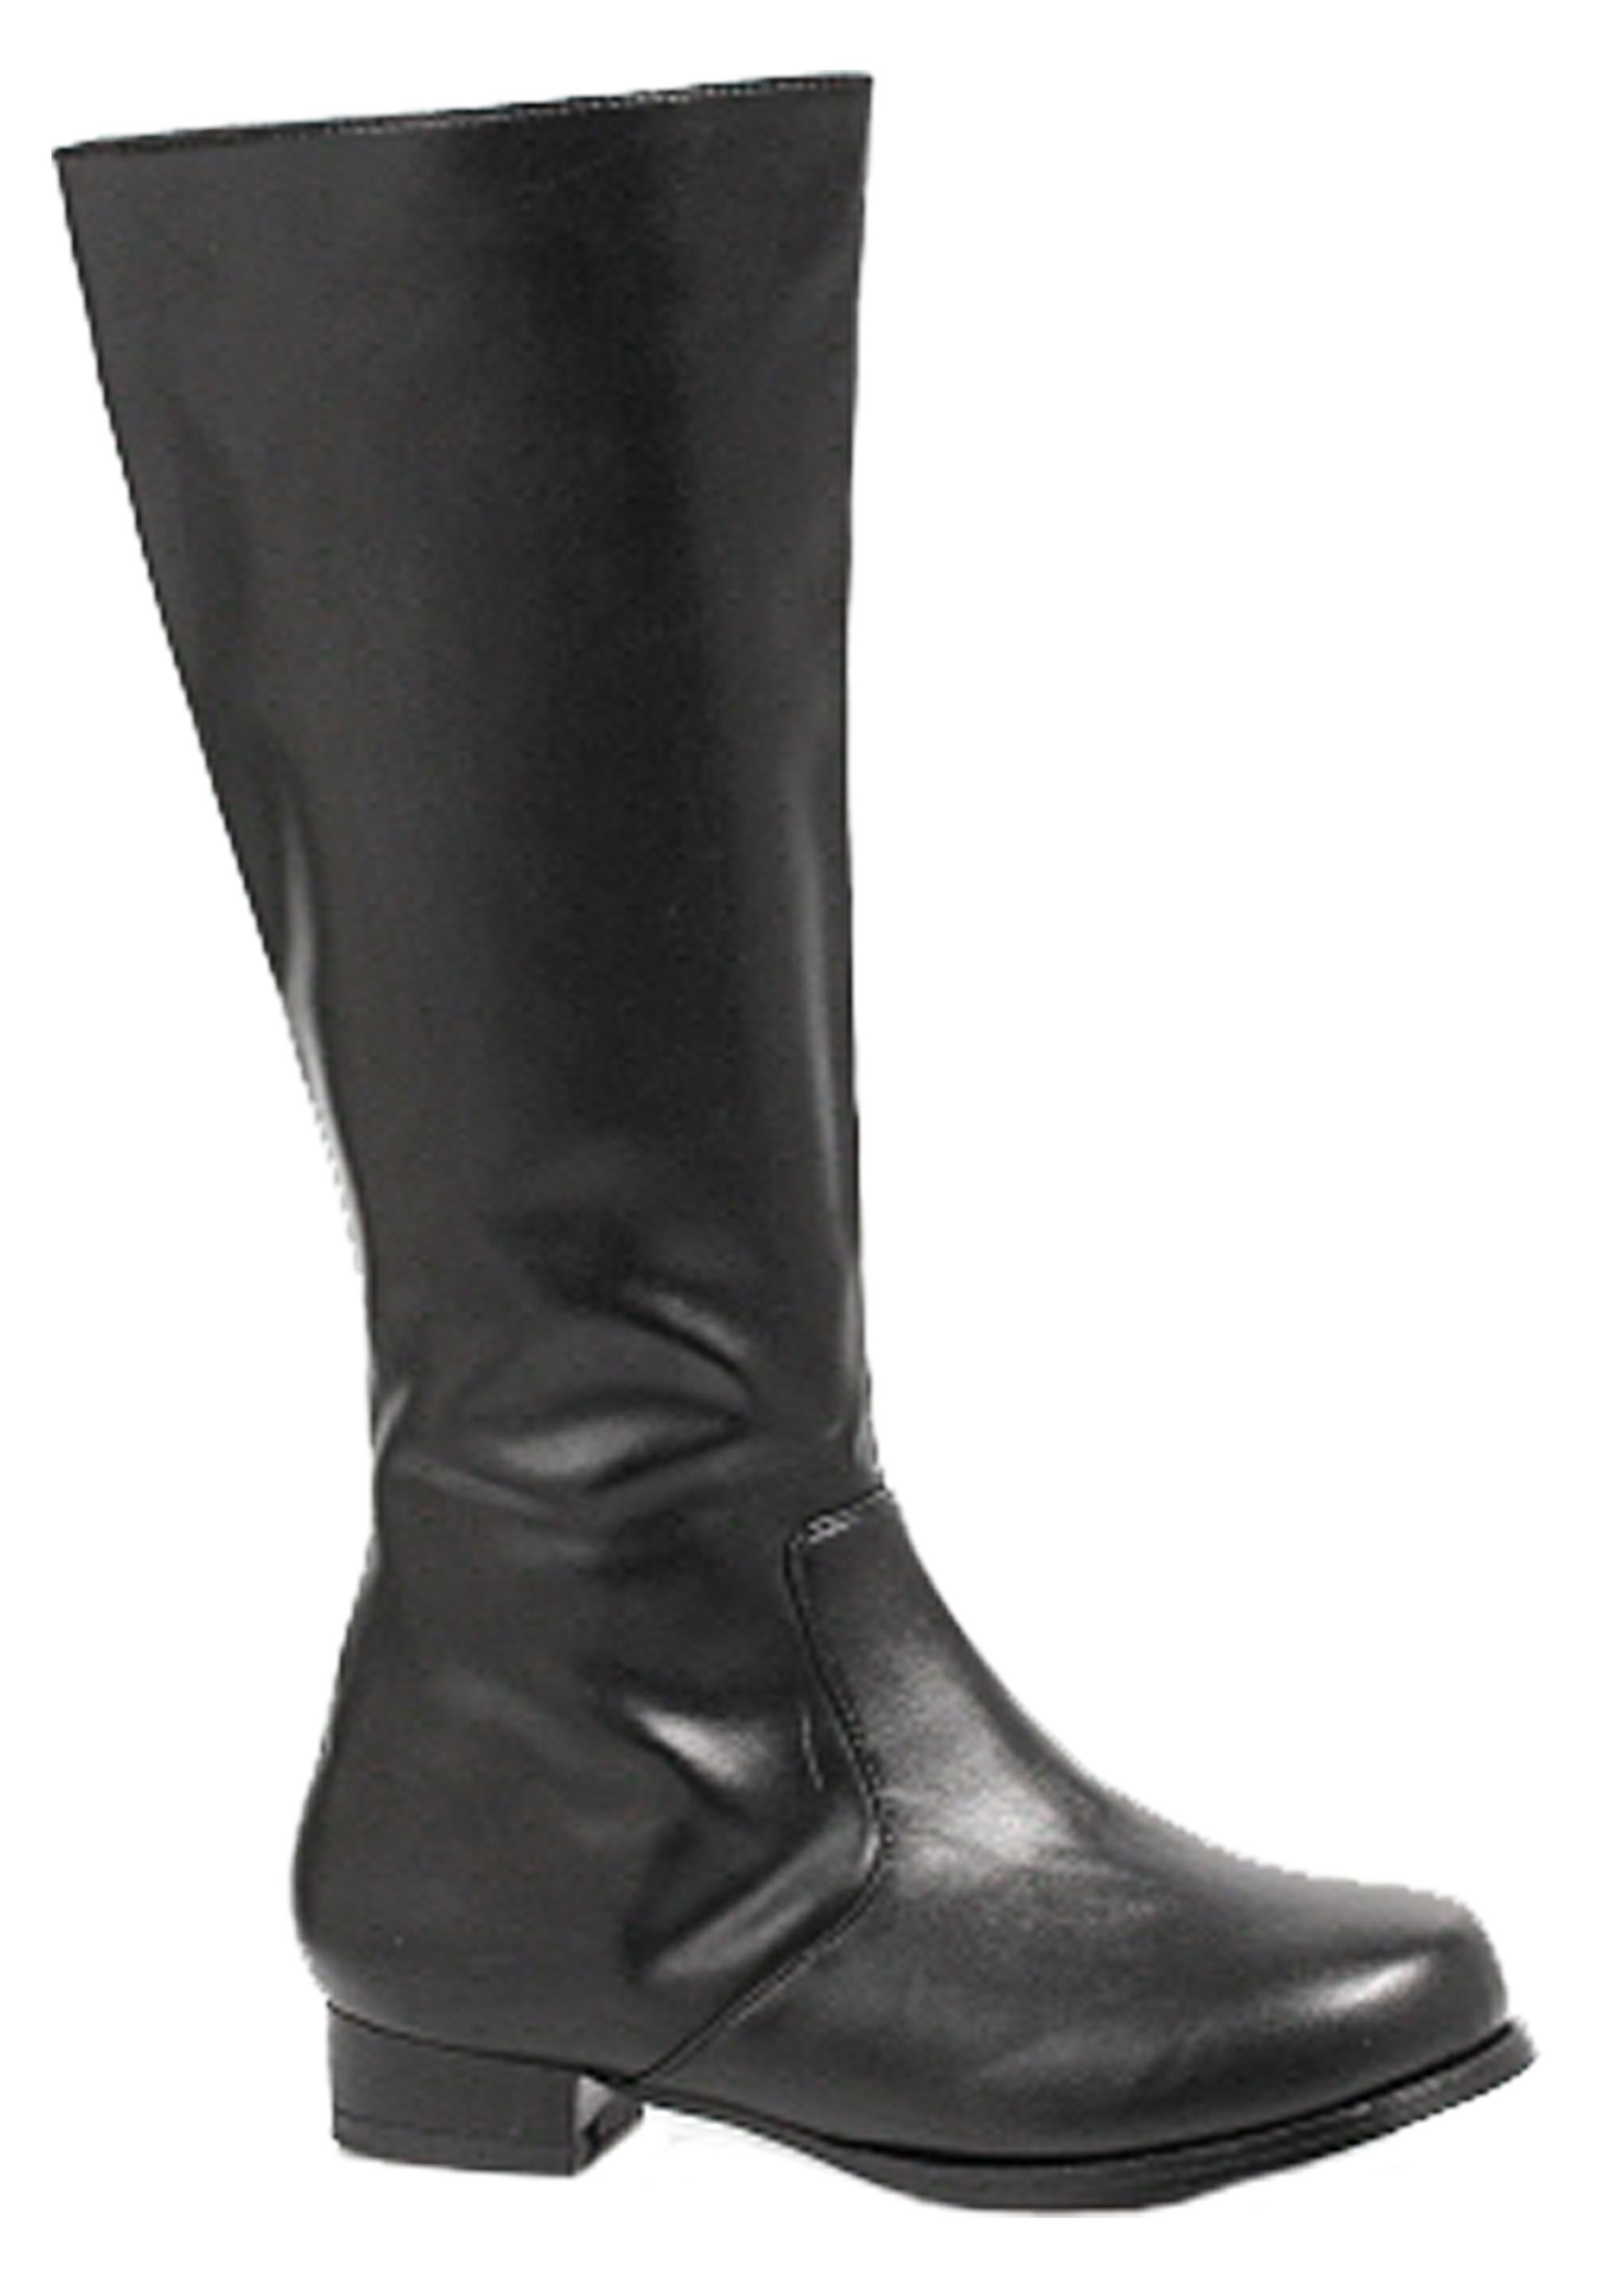 Boys Black Costume Boots